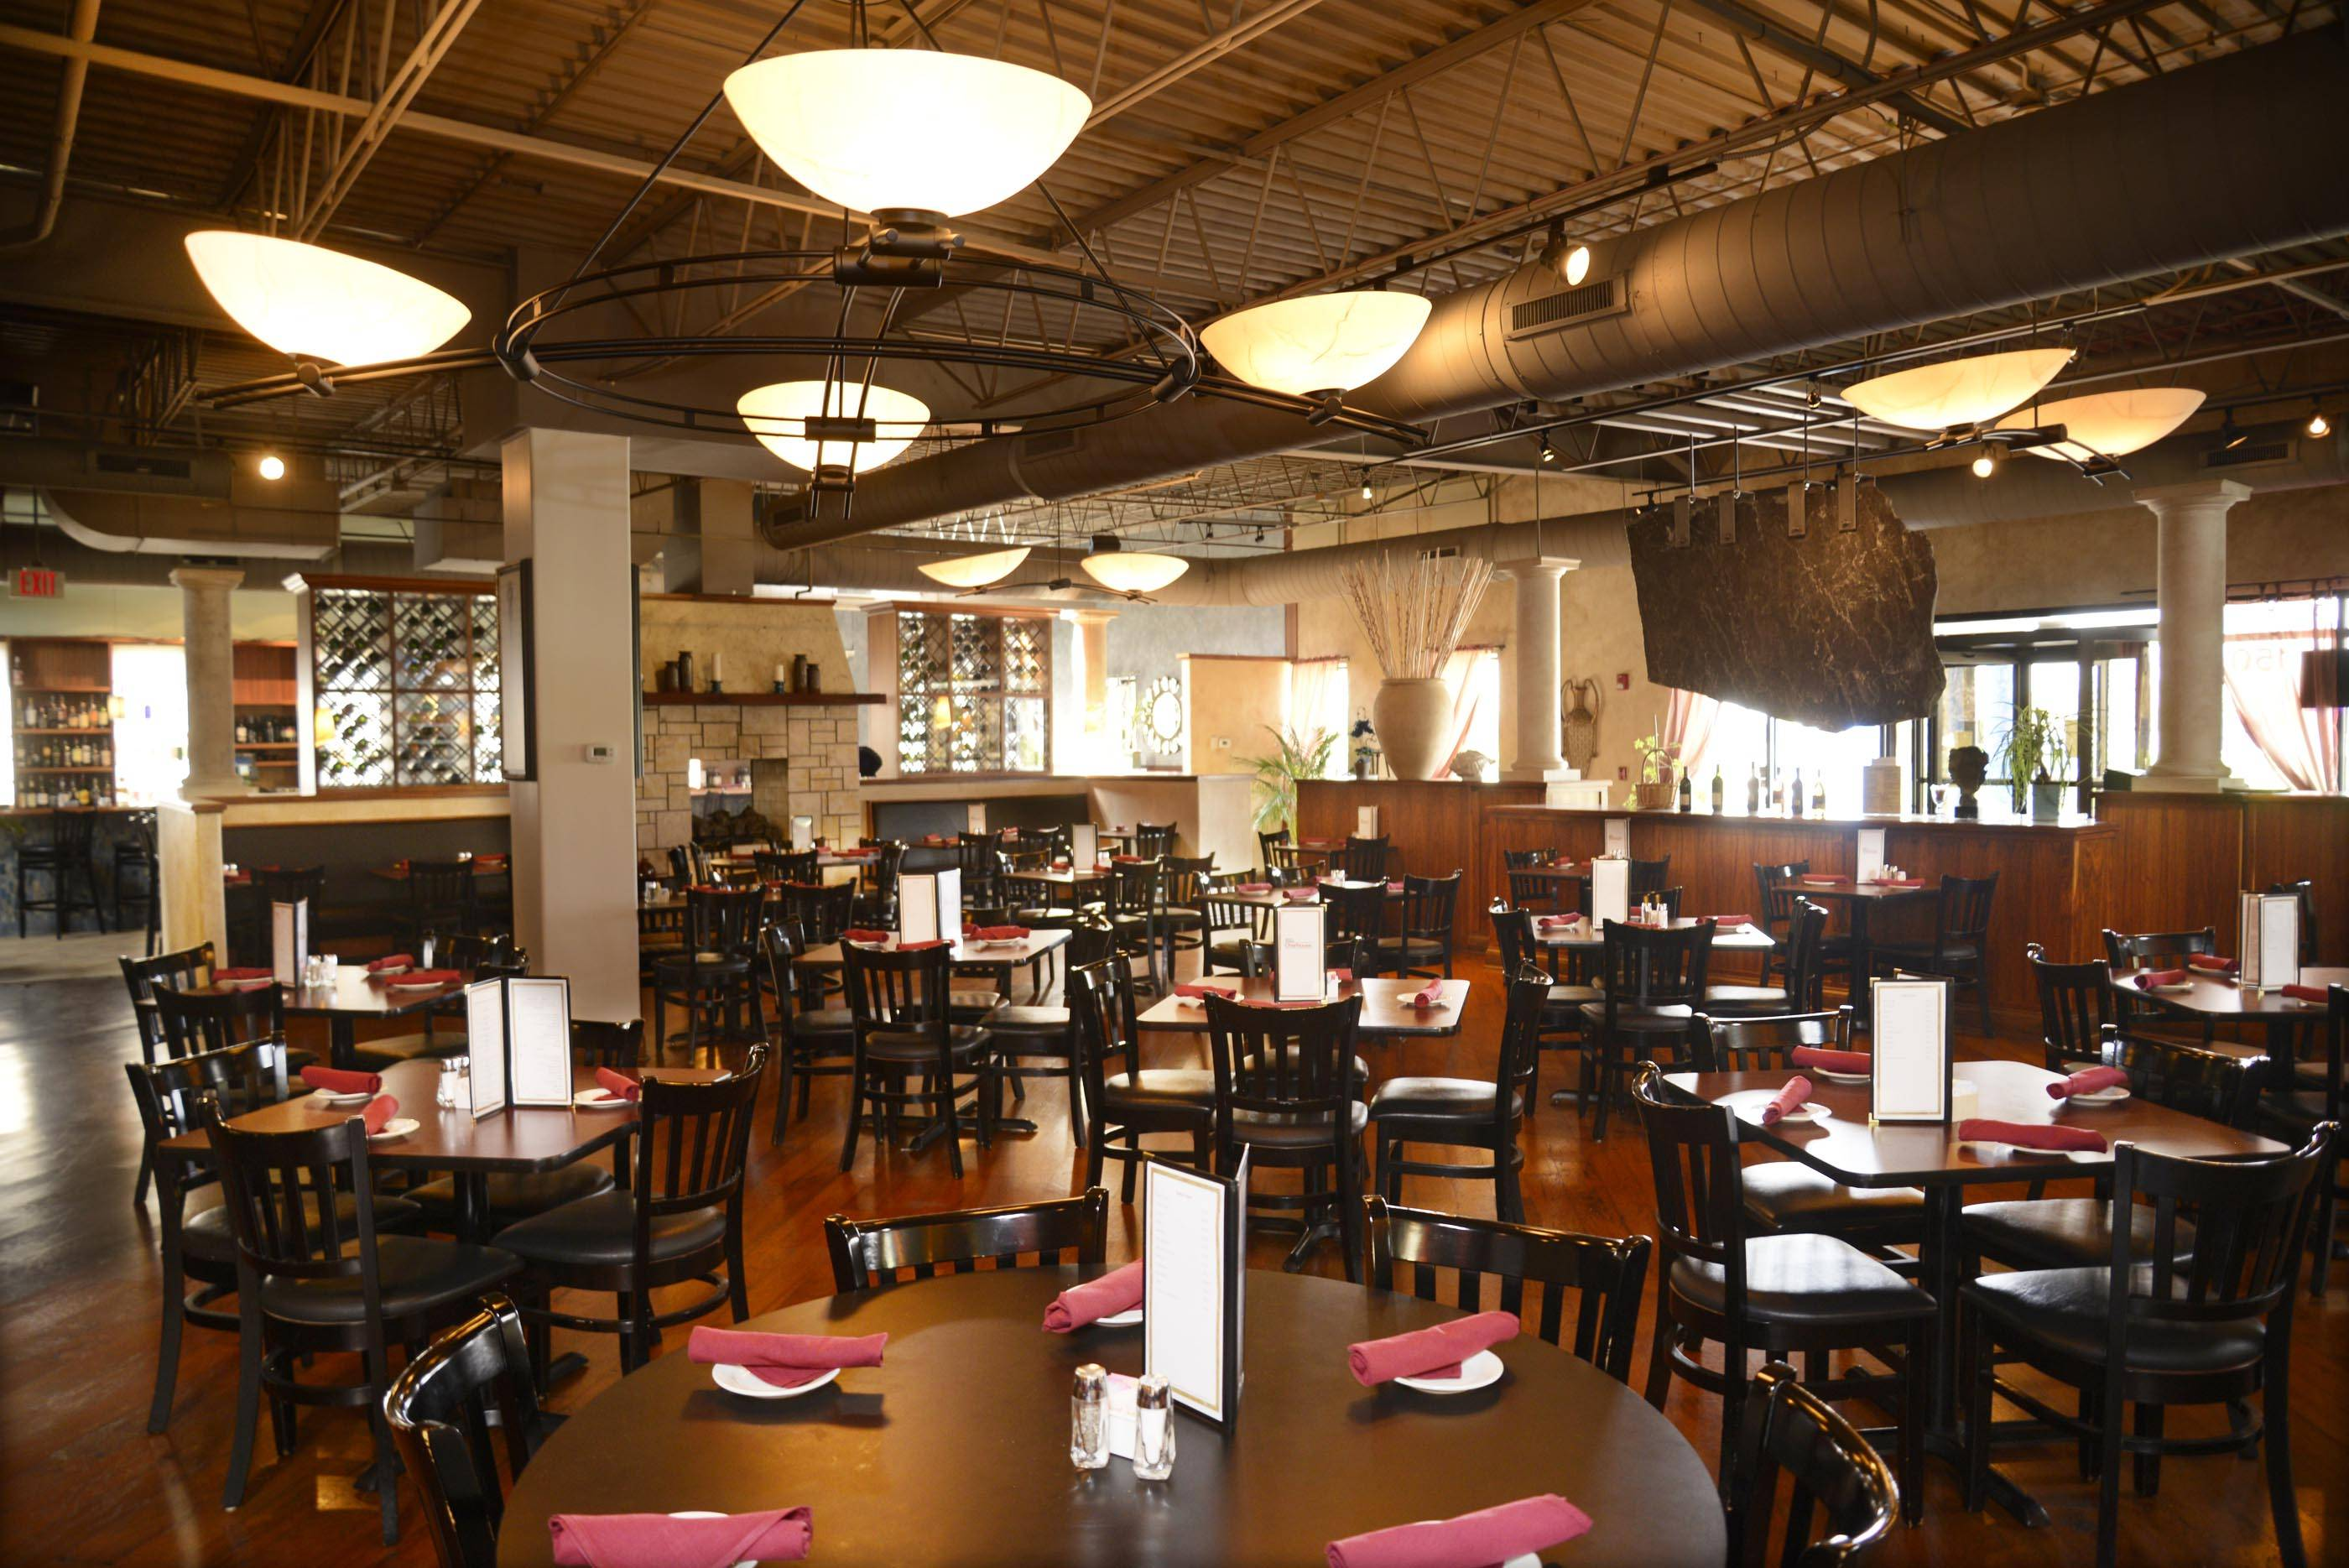 North Avenue Charhouse has moved into a spot that formerly housed Greek restaurants on North Avenue in St. Charles.